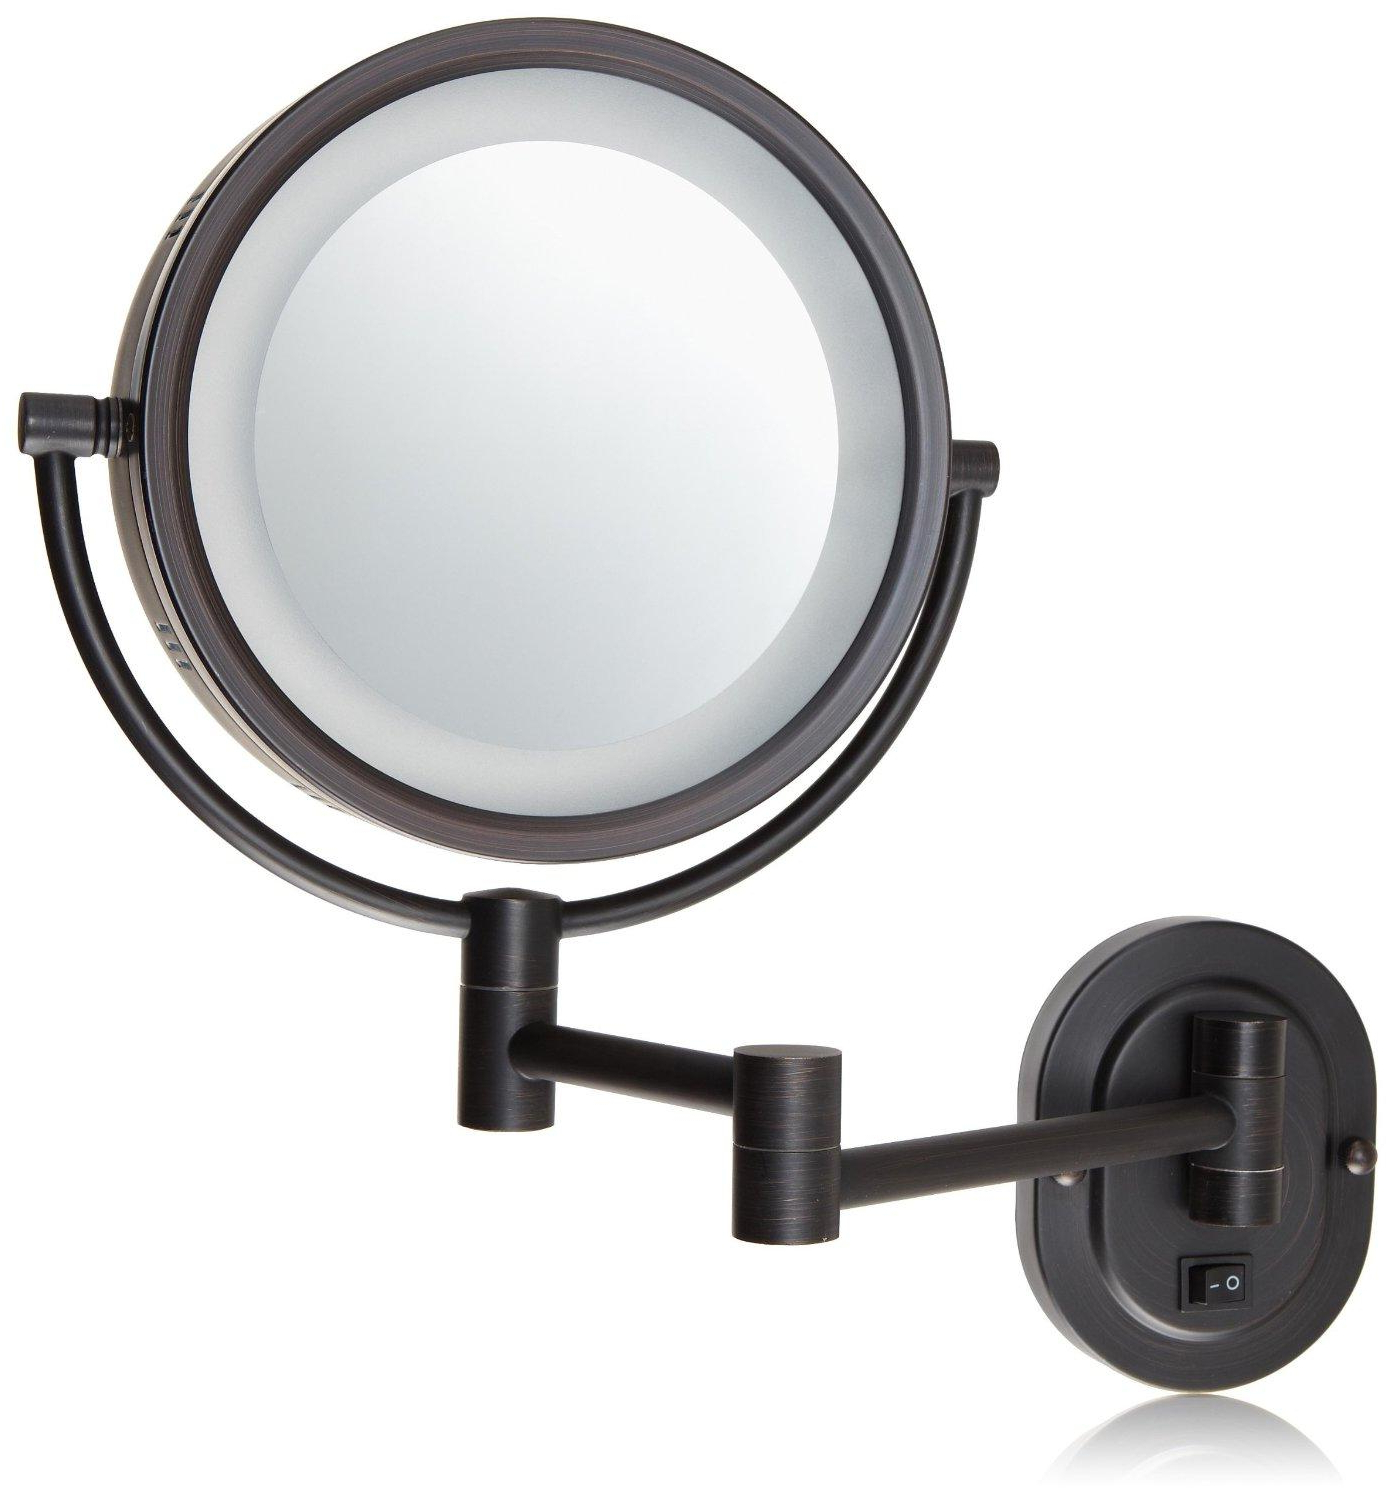 Favorite Swivel Wall Mirrors For Jerdon Hl65bzd 8 Inch Lighted Direct Wire Wall Mount Makeup Mirror With 5x Magnification, Bronze Finish (View 2 of 20)